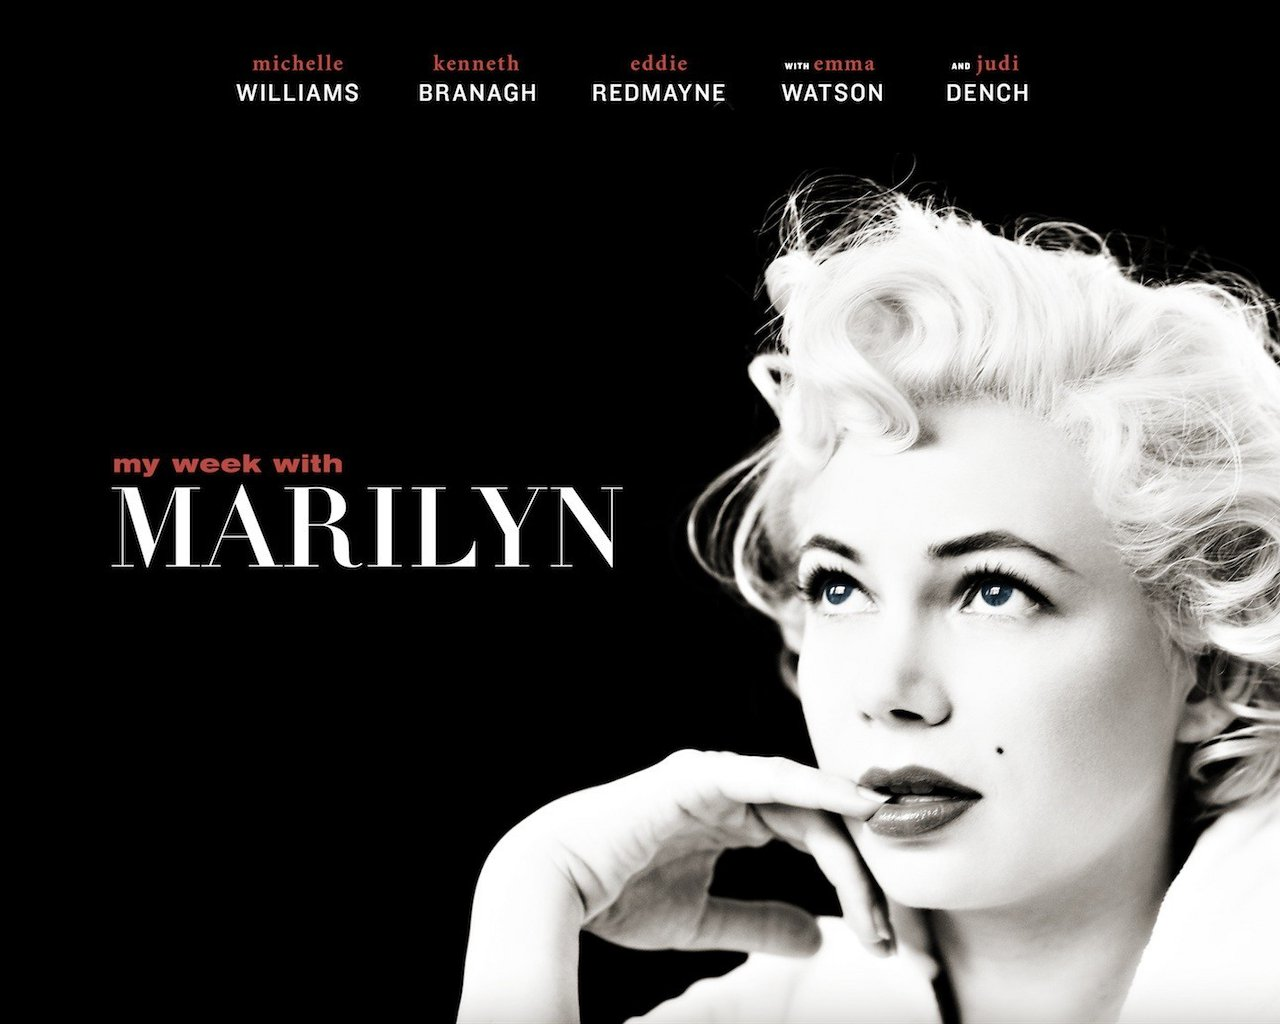 http://1.bp.blogspot.com/-iF3QllckPv0/T5qReNjOelI/AAAAAAAAA5Q/x3xNIXqjl-k/s1600/my-week-with-marilyn-wallpaper-02.jpg